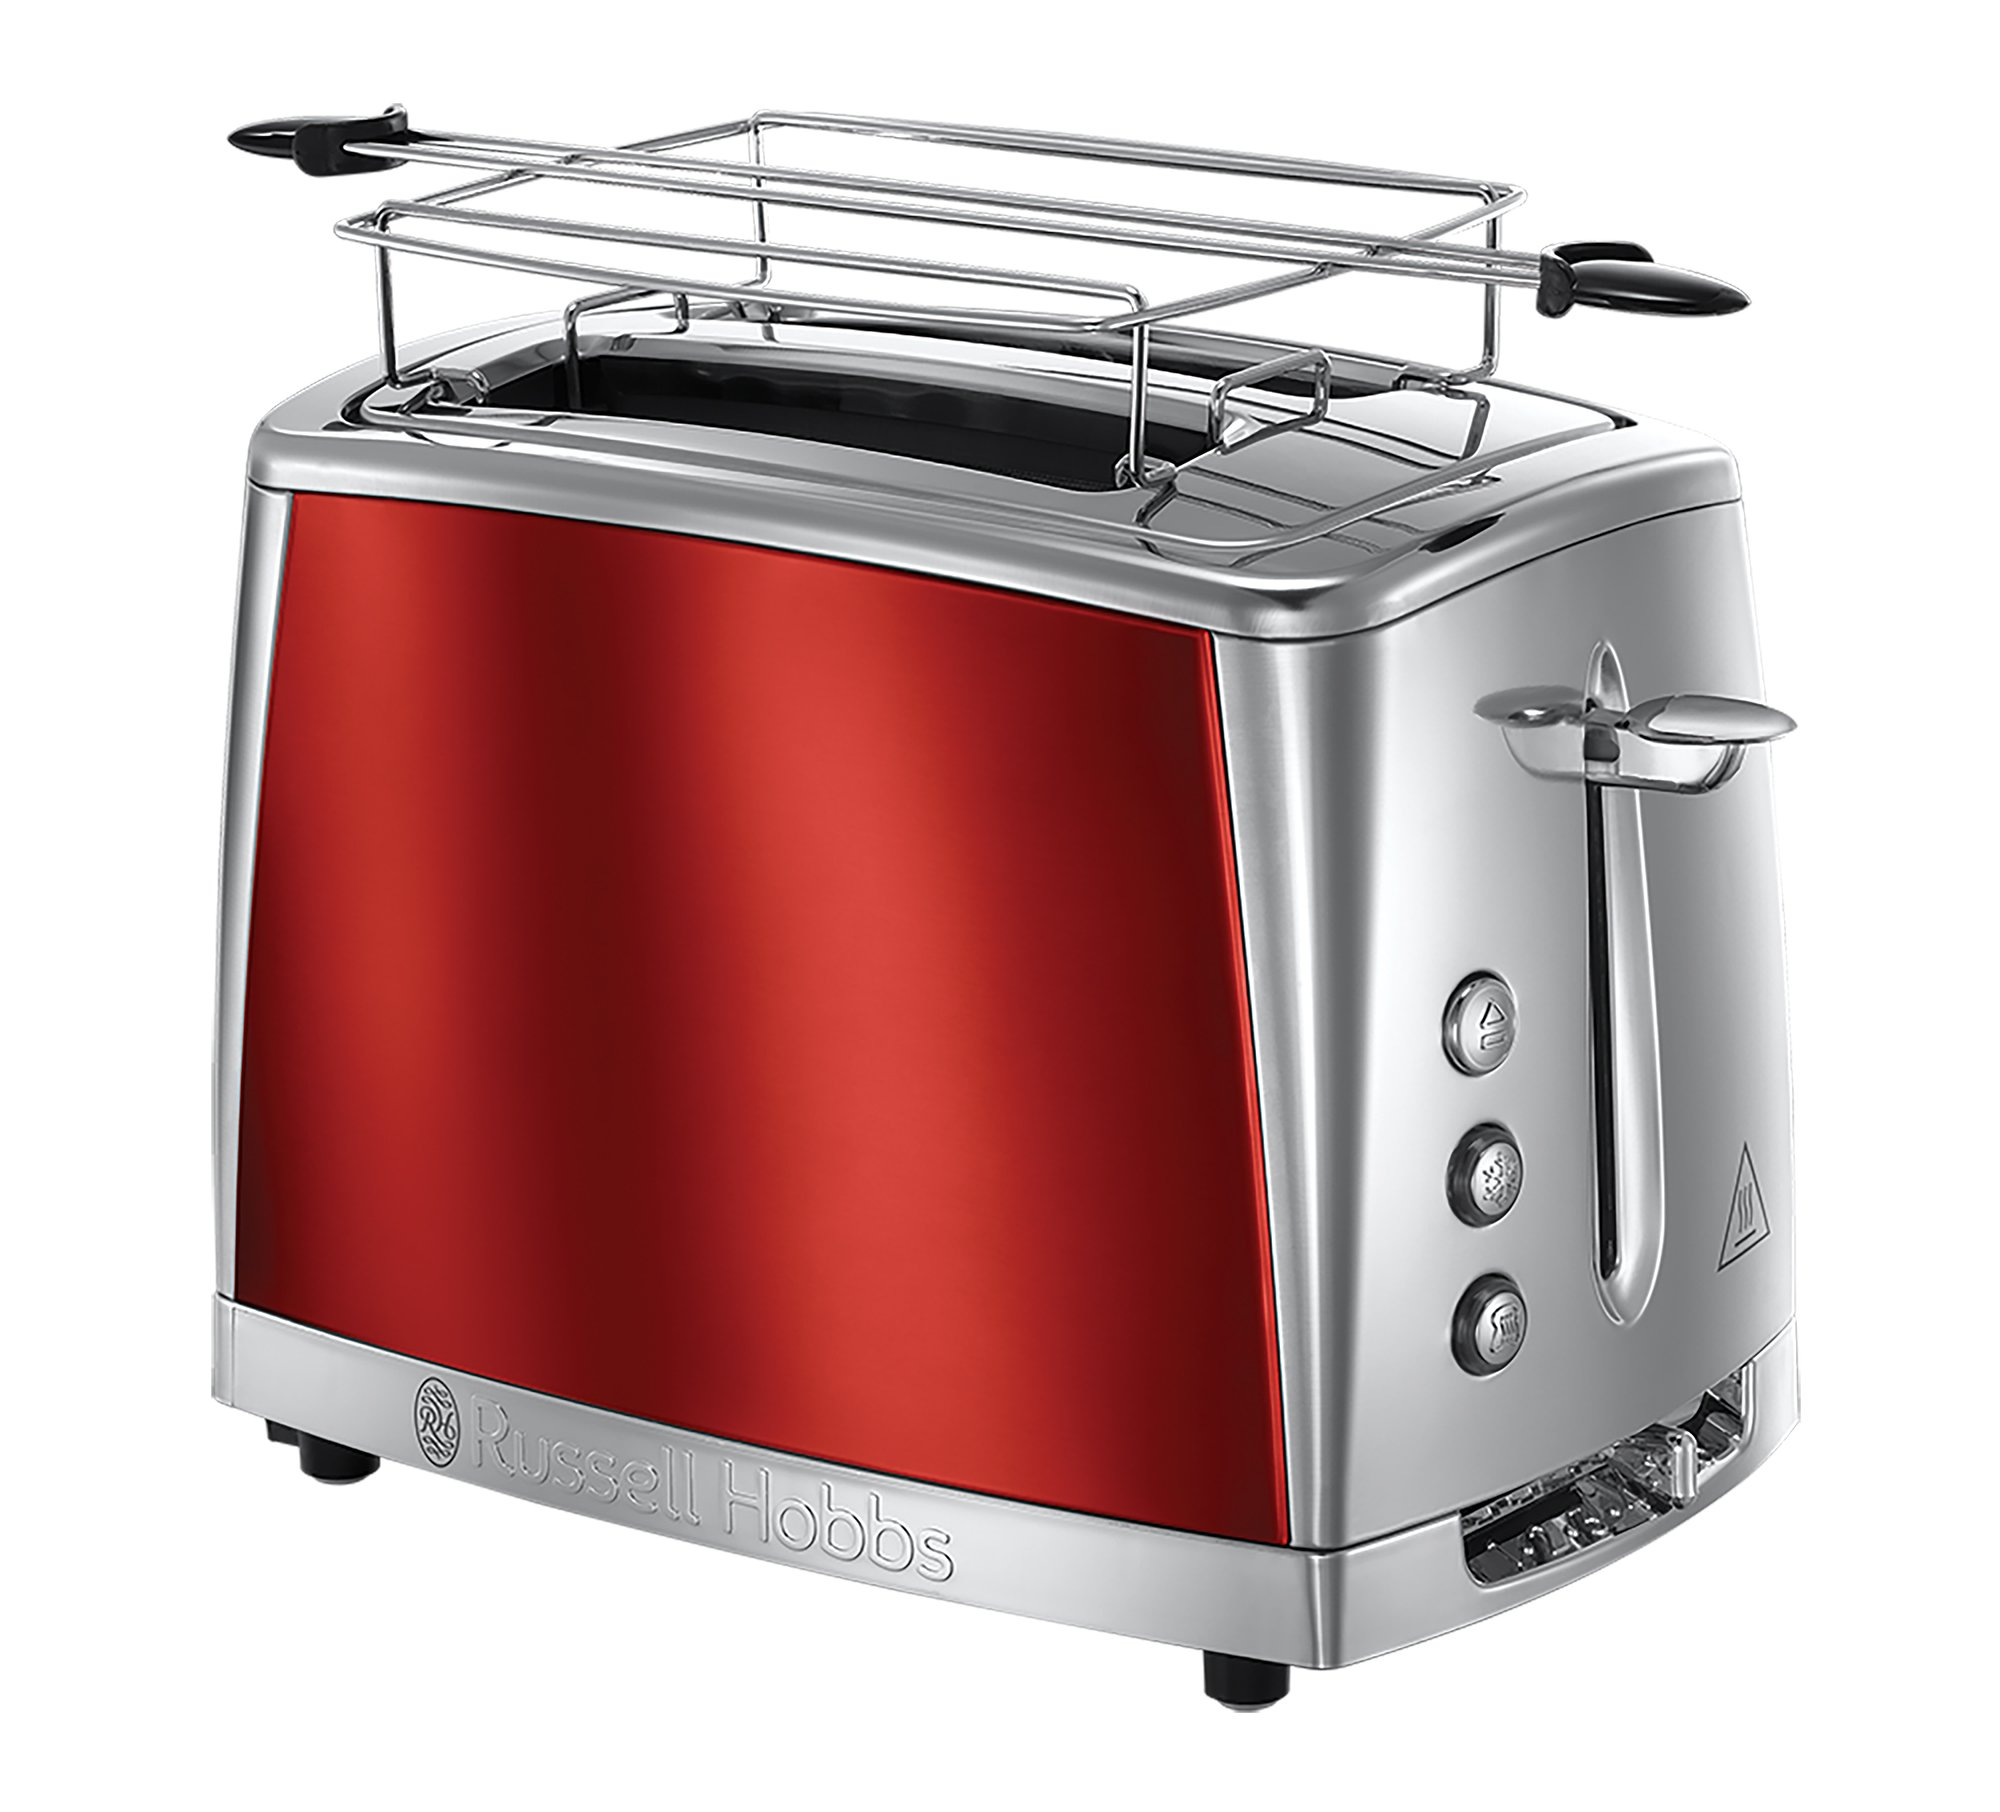 Russell Hobbs Grille-Pain, Toaster Luna, Technologie Cuisson Rapide, Contrôle Brunissage, Chauffe Viennoiserie Inclus - Rouge 23220-56 product image